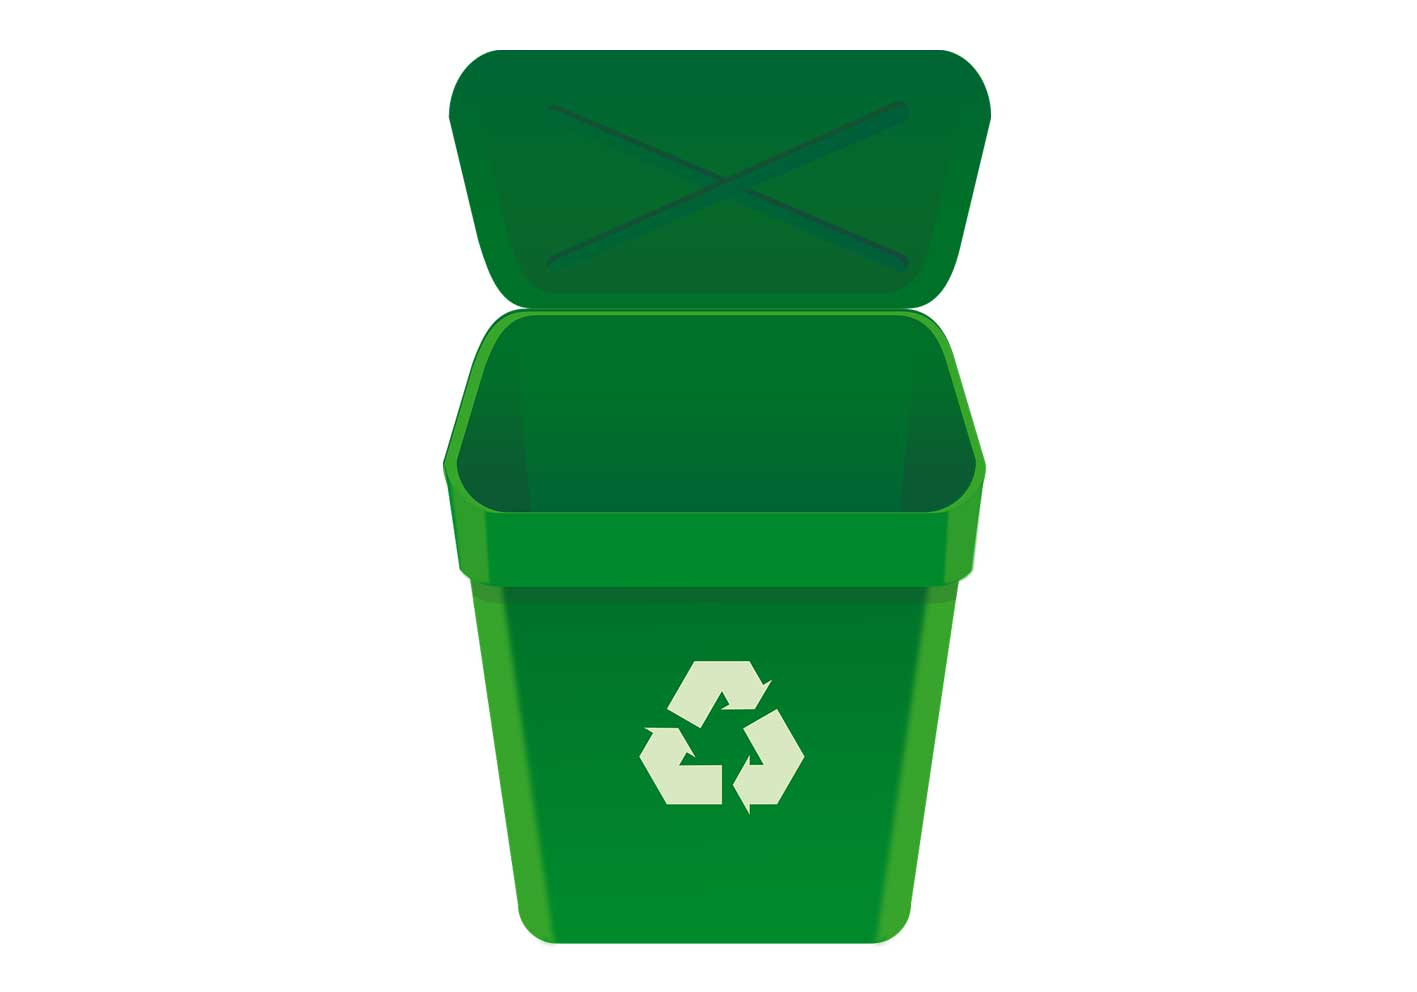 6 Tips For Better Recycling